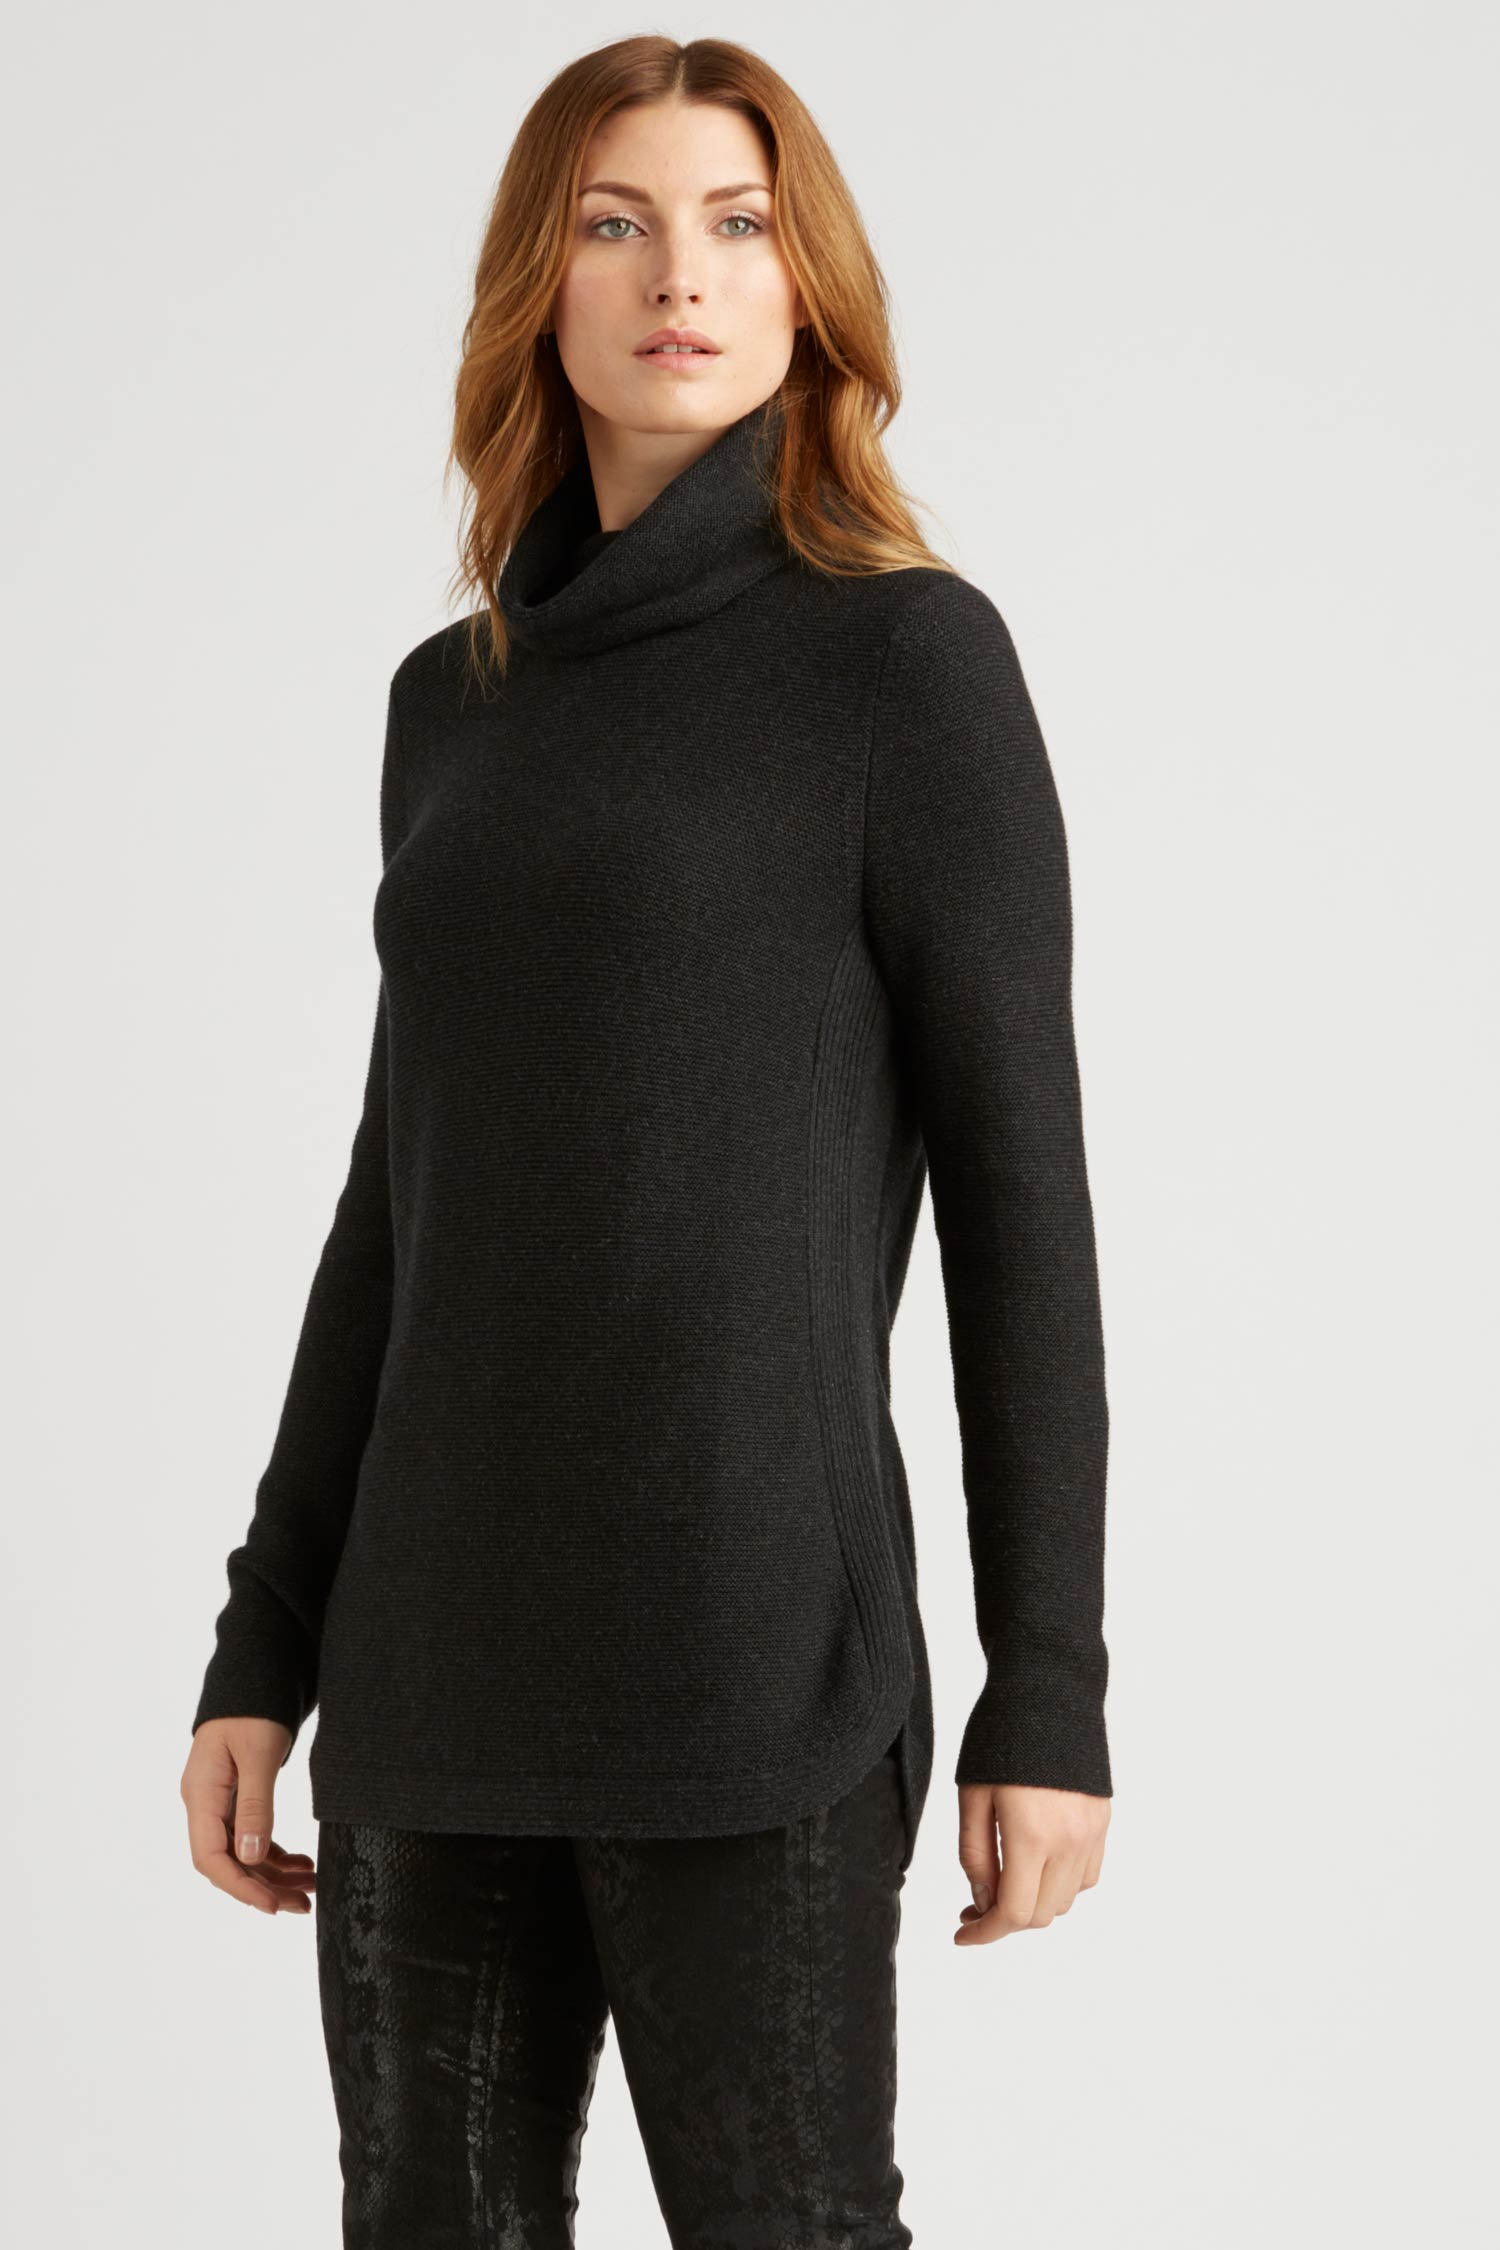 Womens Funnel Neck Sweater | Organic Cotton Clothing | Black